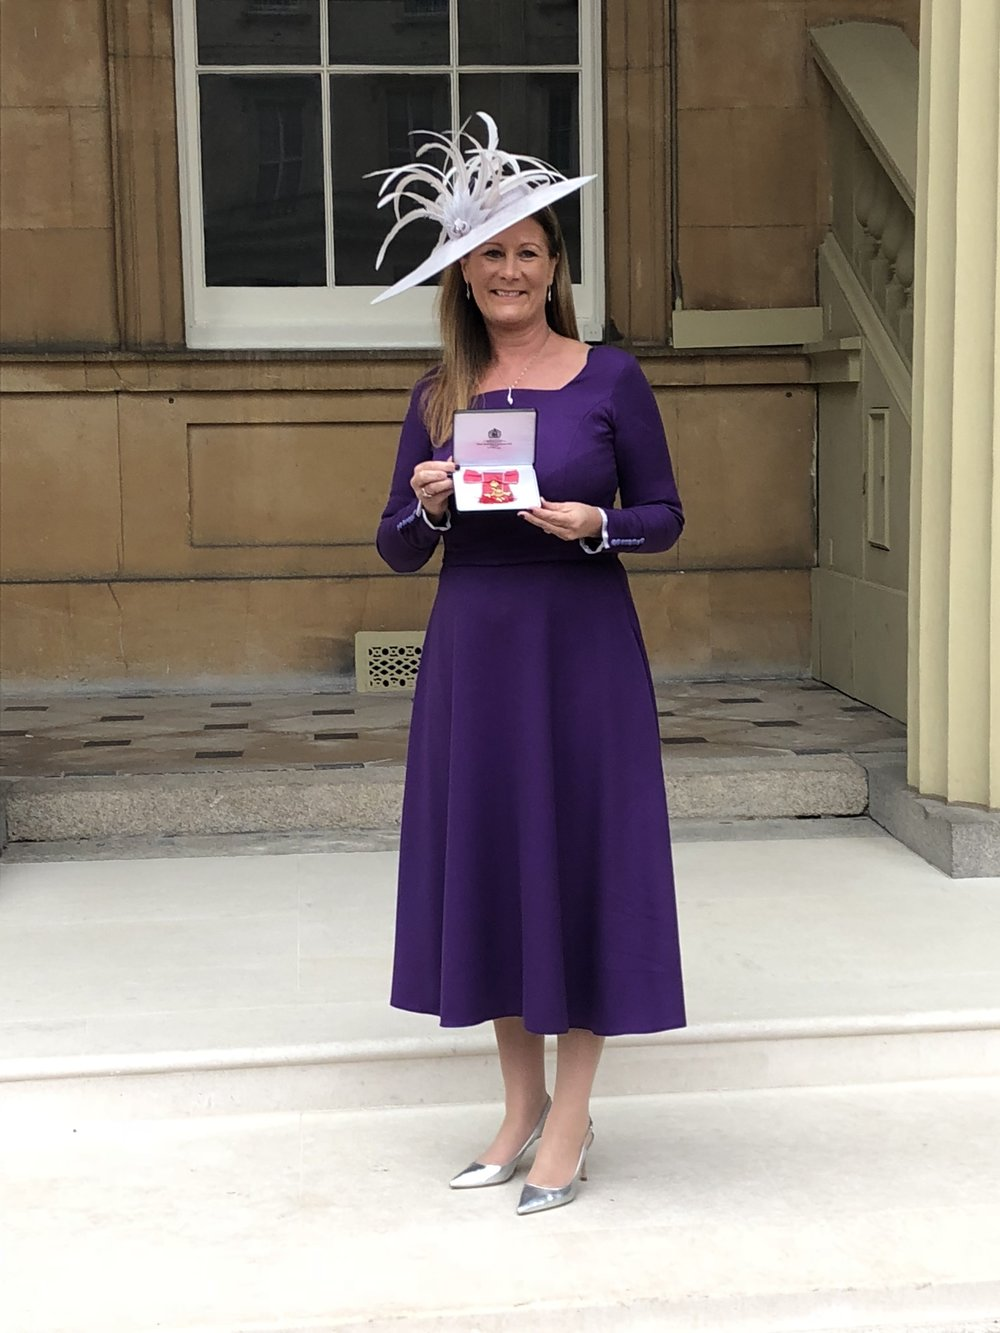 Marnie MIllard OBE, CEO of Nichols PLC receiving her OBE at Buckingham Palace for services to business in the North West and International Trade.